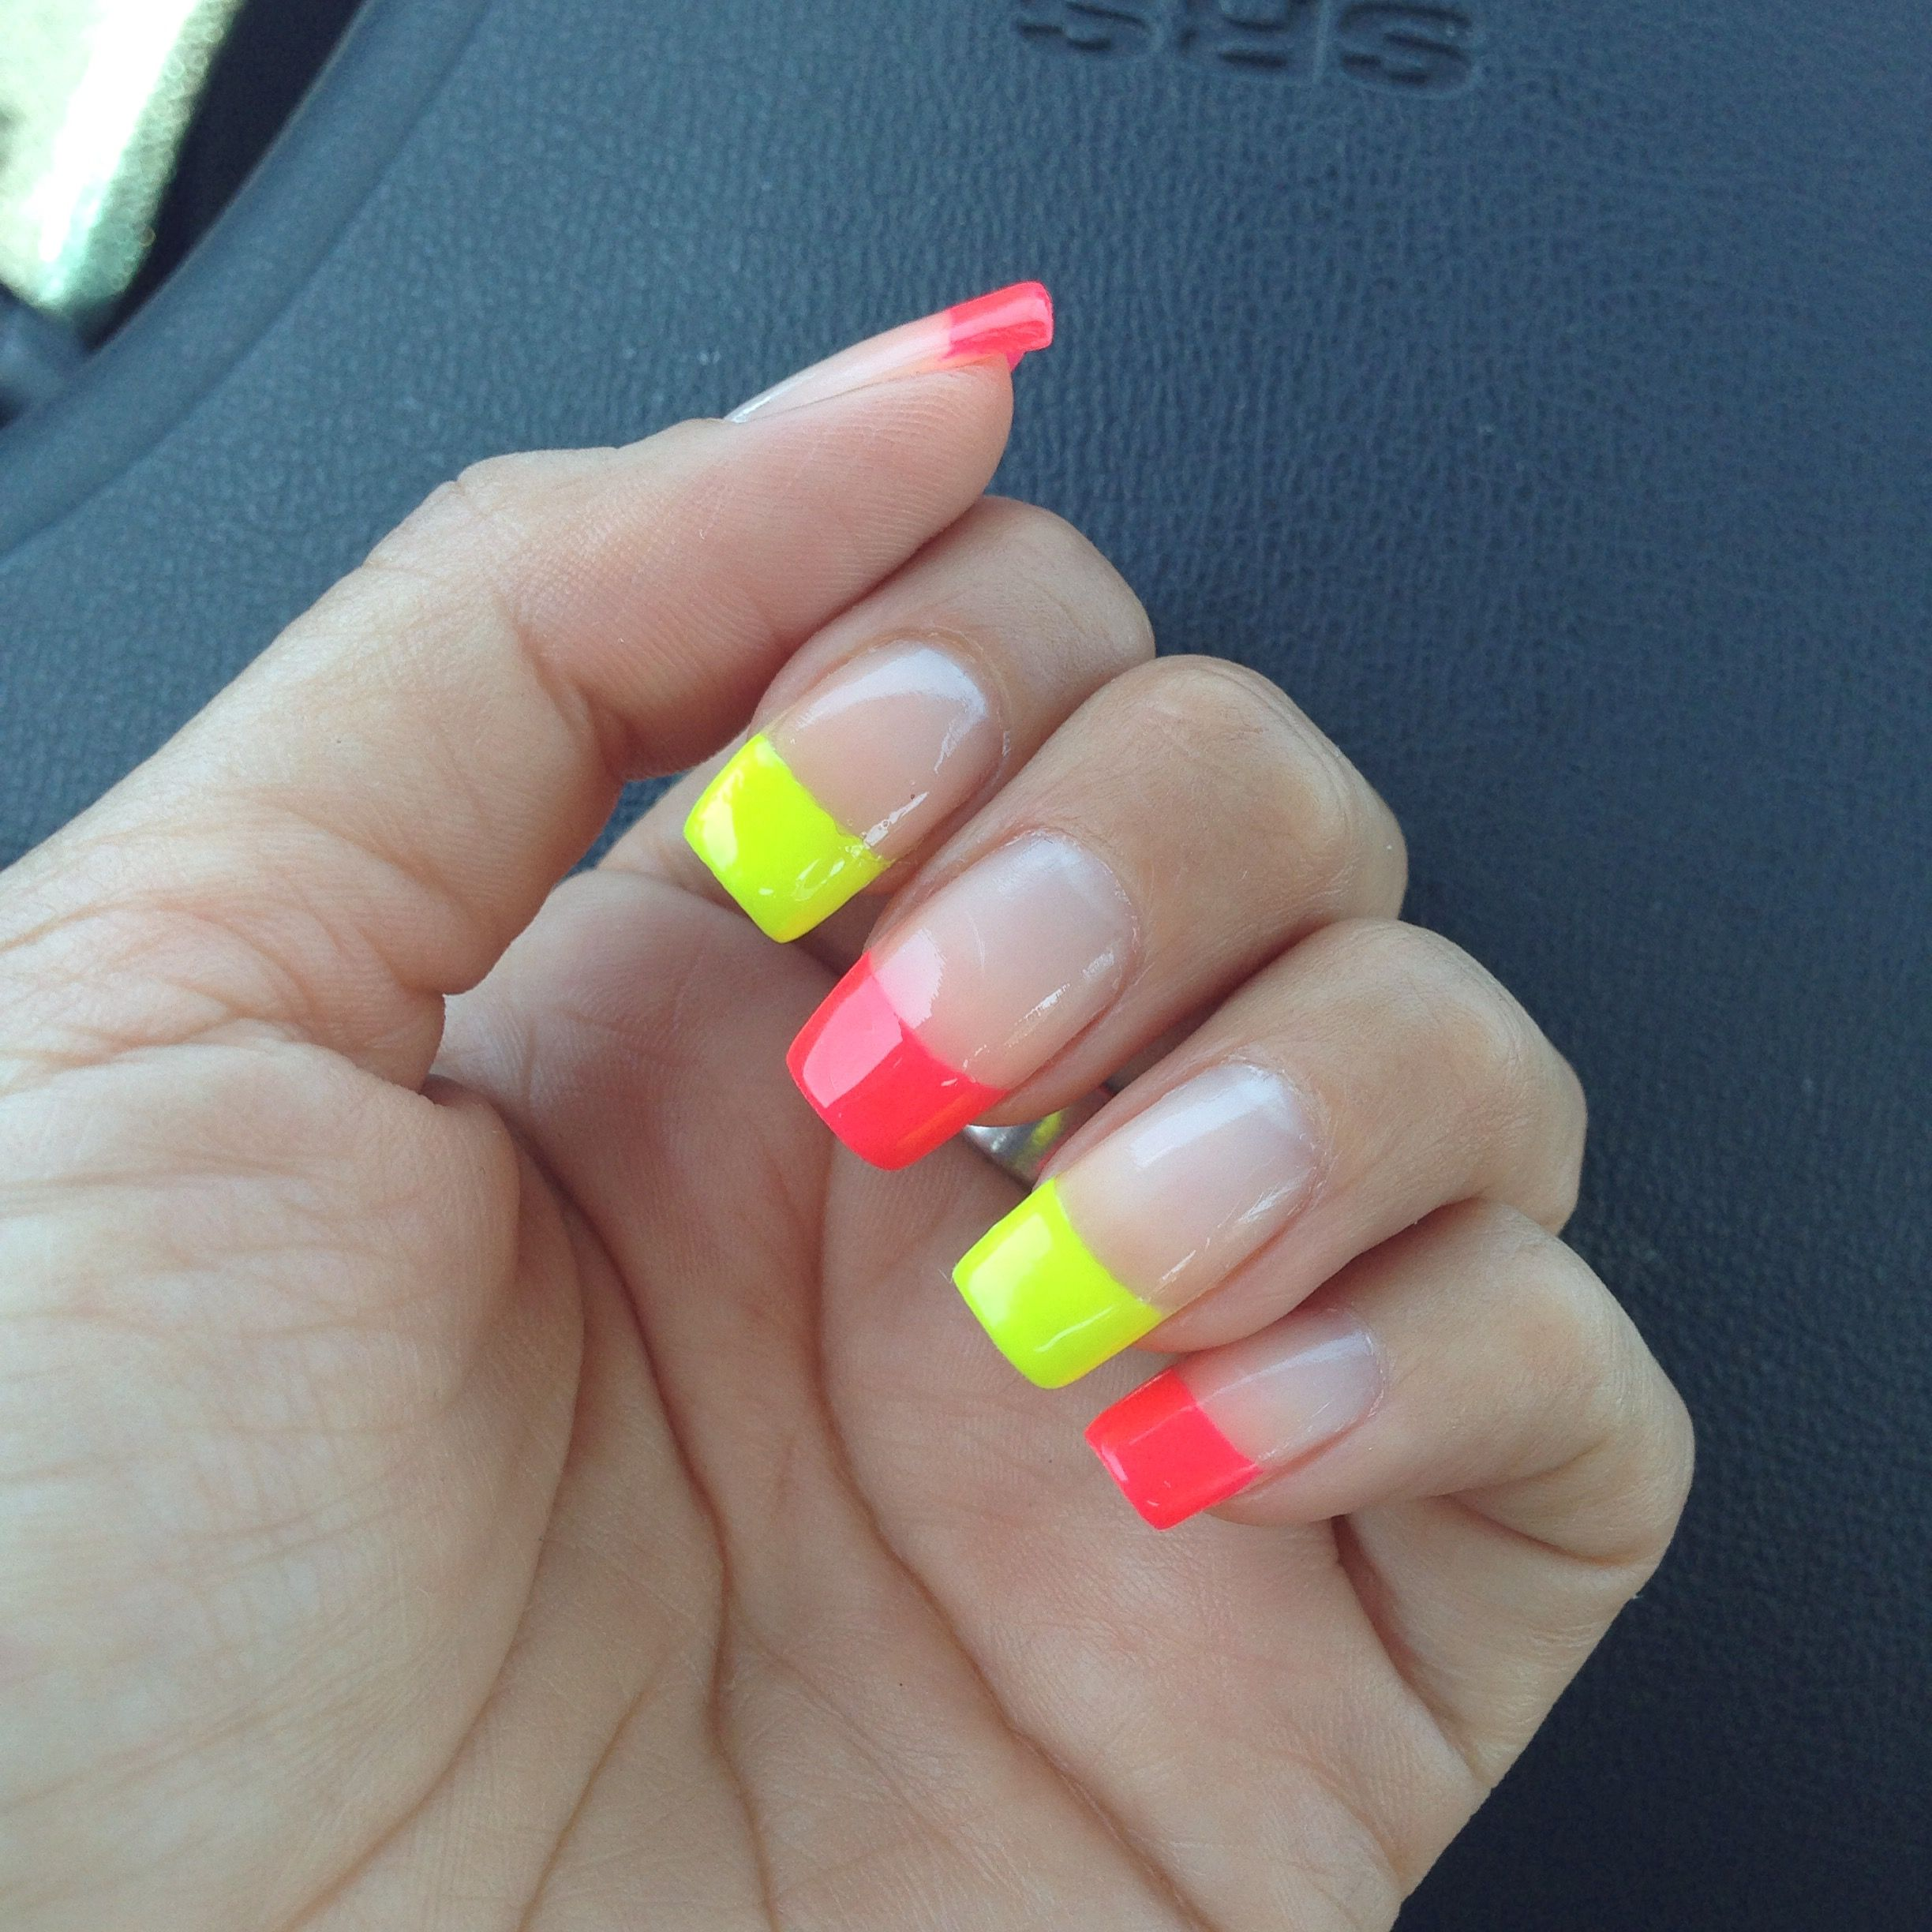 Neon French Manicure :) | Manicure, Fall nail colors, Neon ...